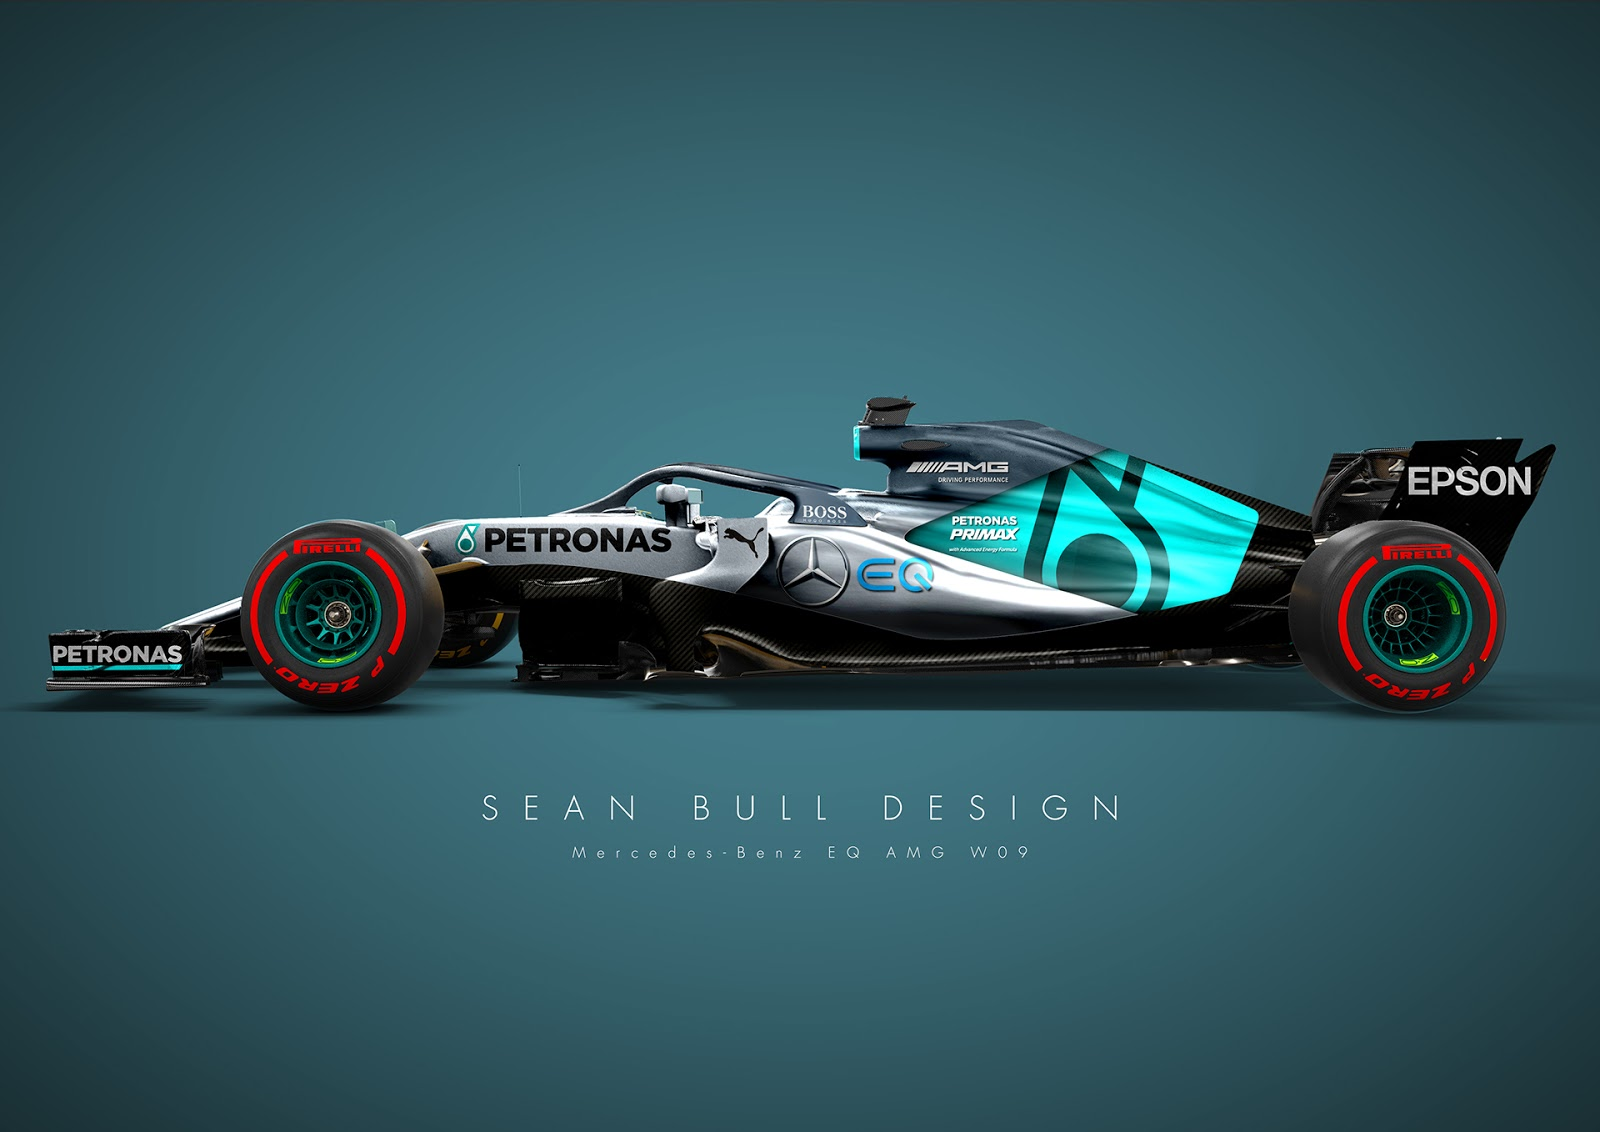 2018-F1-Car-Halo-Liveries-4